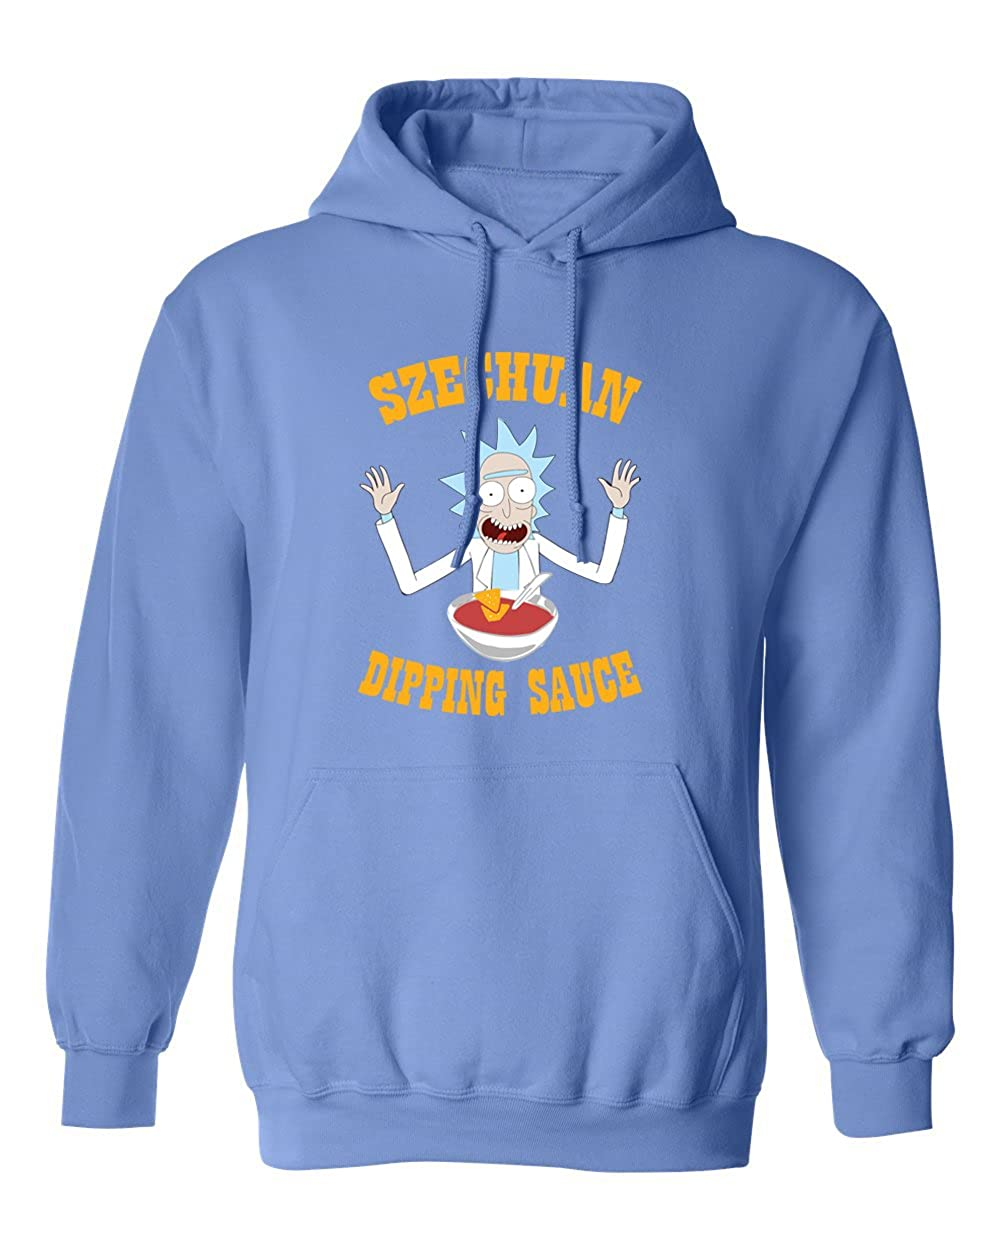 KING THREADS Ricky /& Morty Szechuan Sauce Dipping Funny Mens Hoodie Hooded Sweatshirt